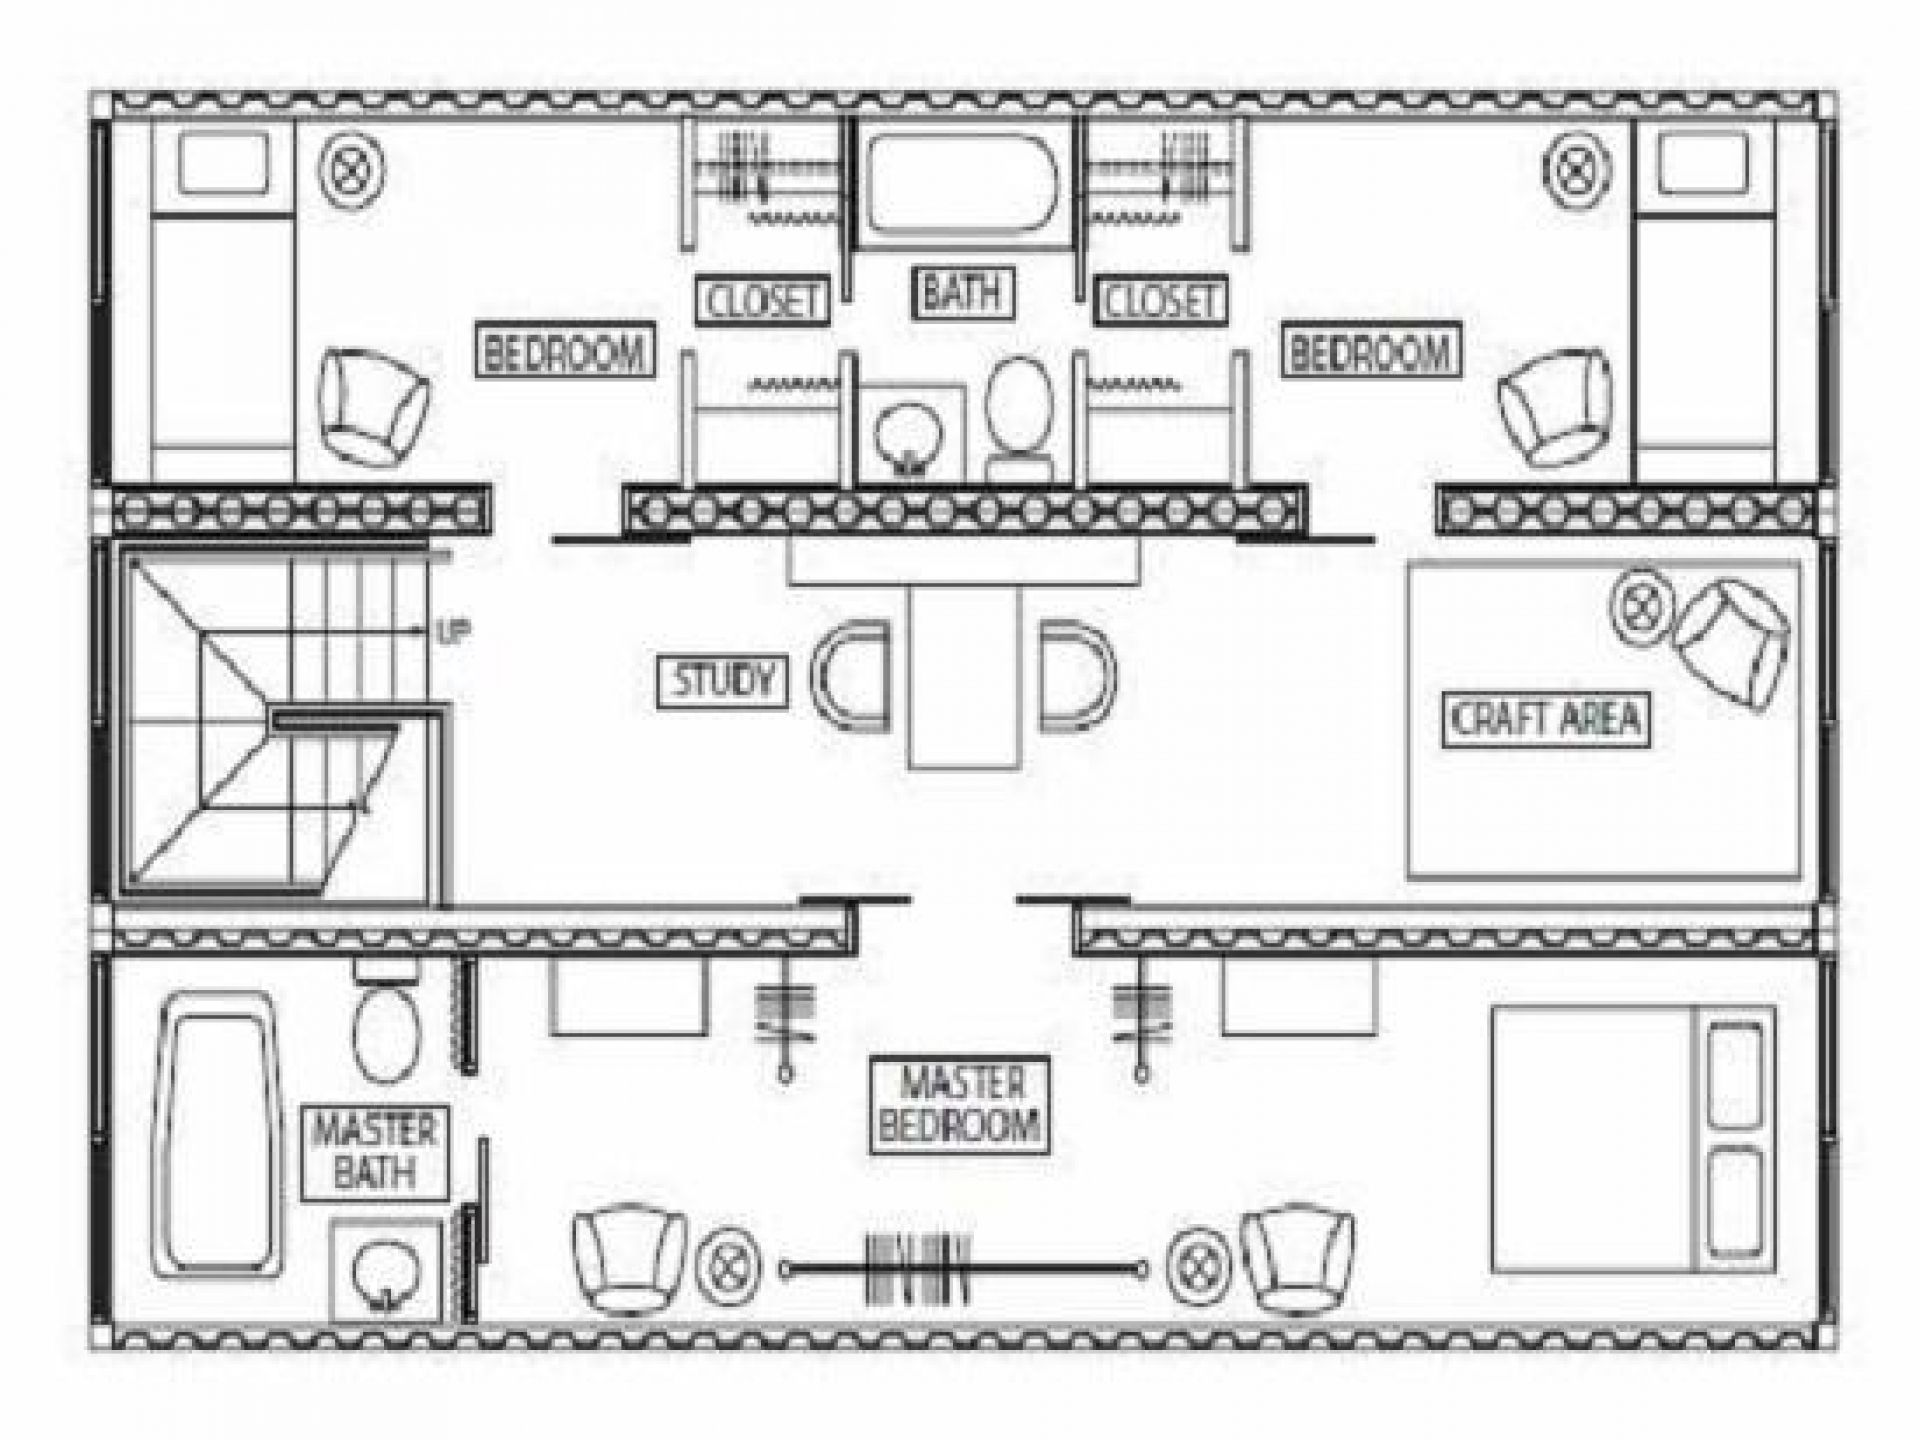 amazing shipping container homes plans 3 shipping container home floor plans container house pinterest storage container houses container house. beautiful ideas. Home Design Ideas